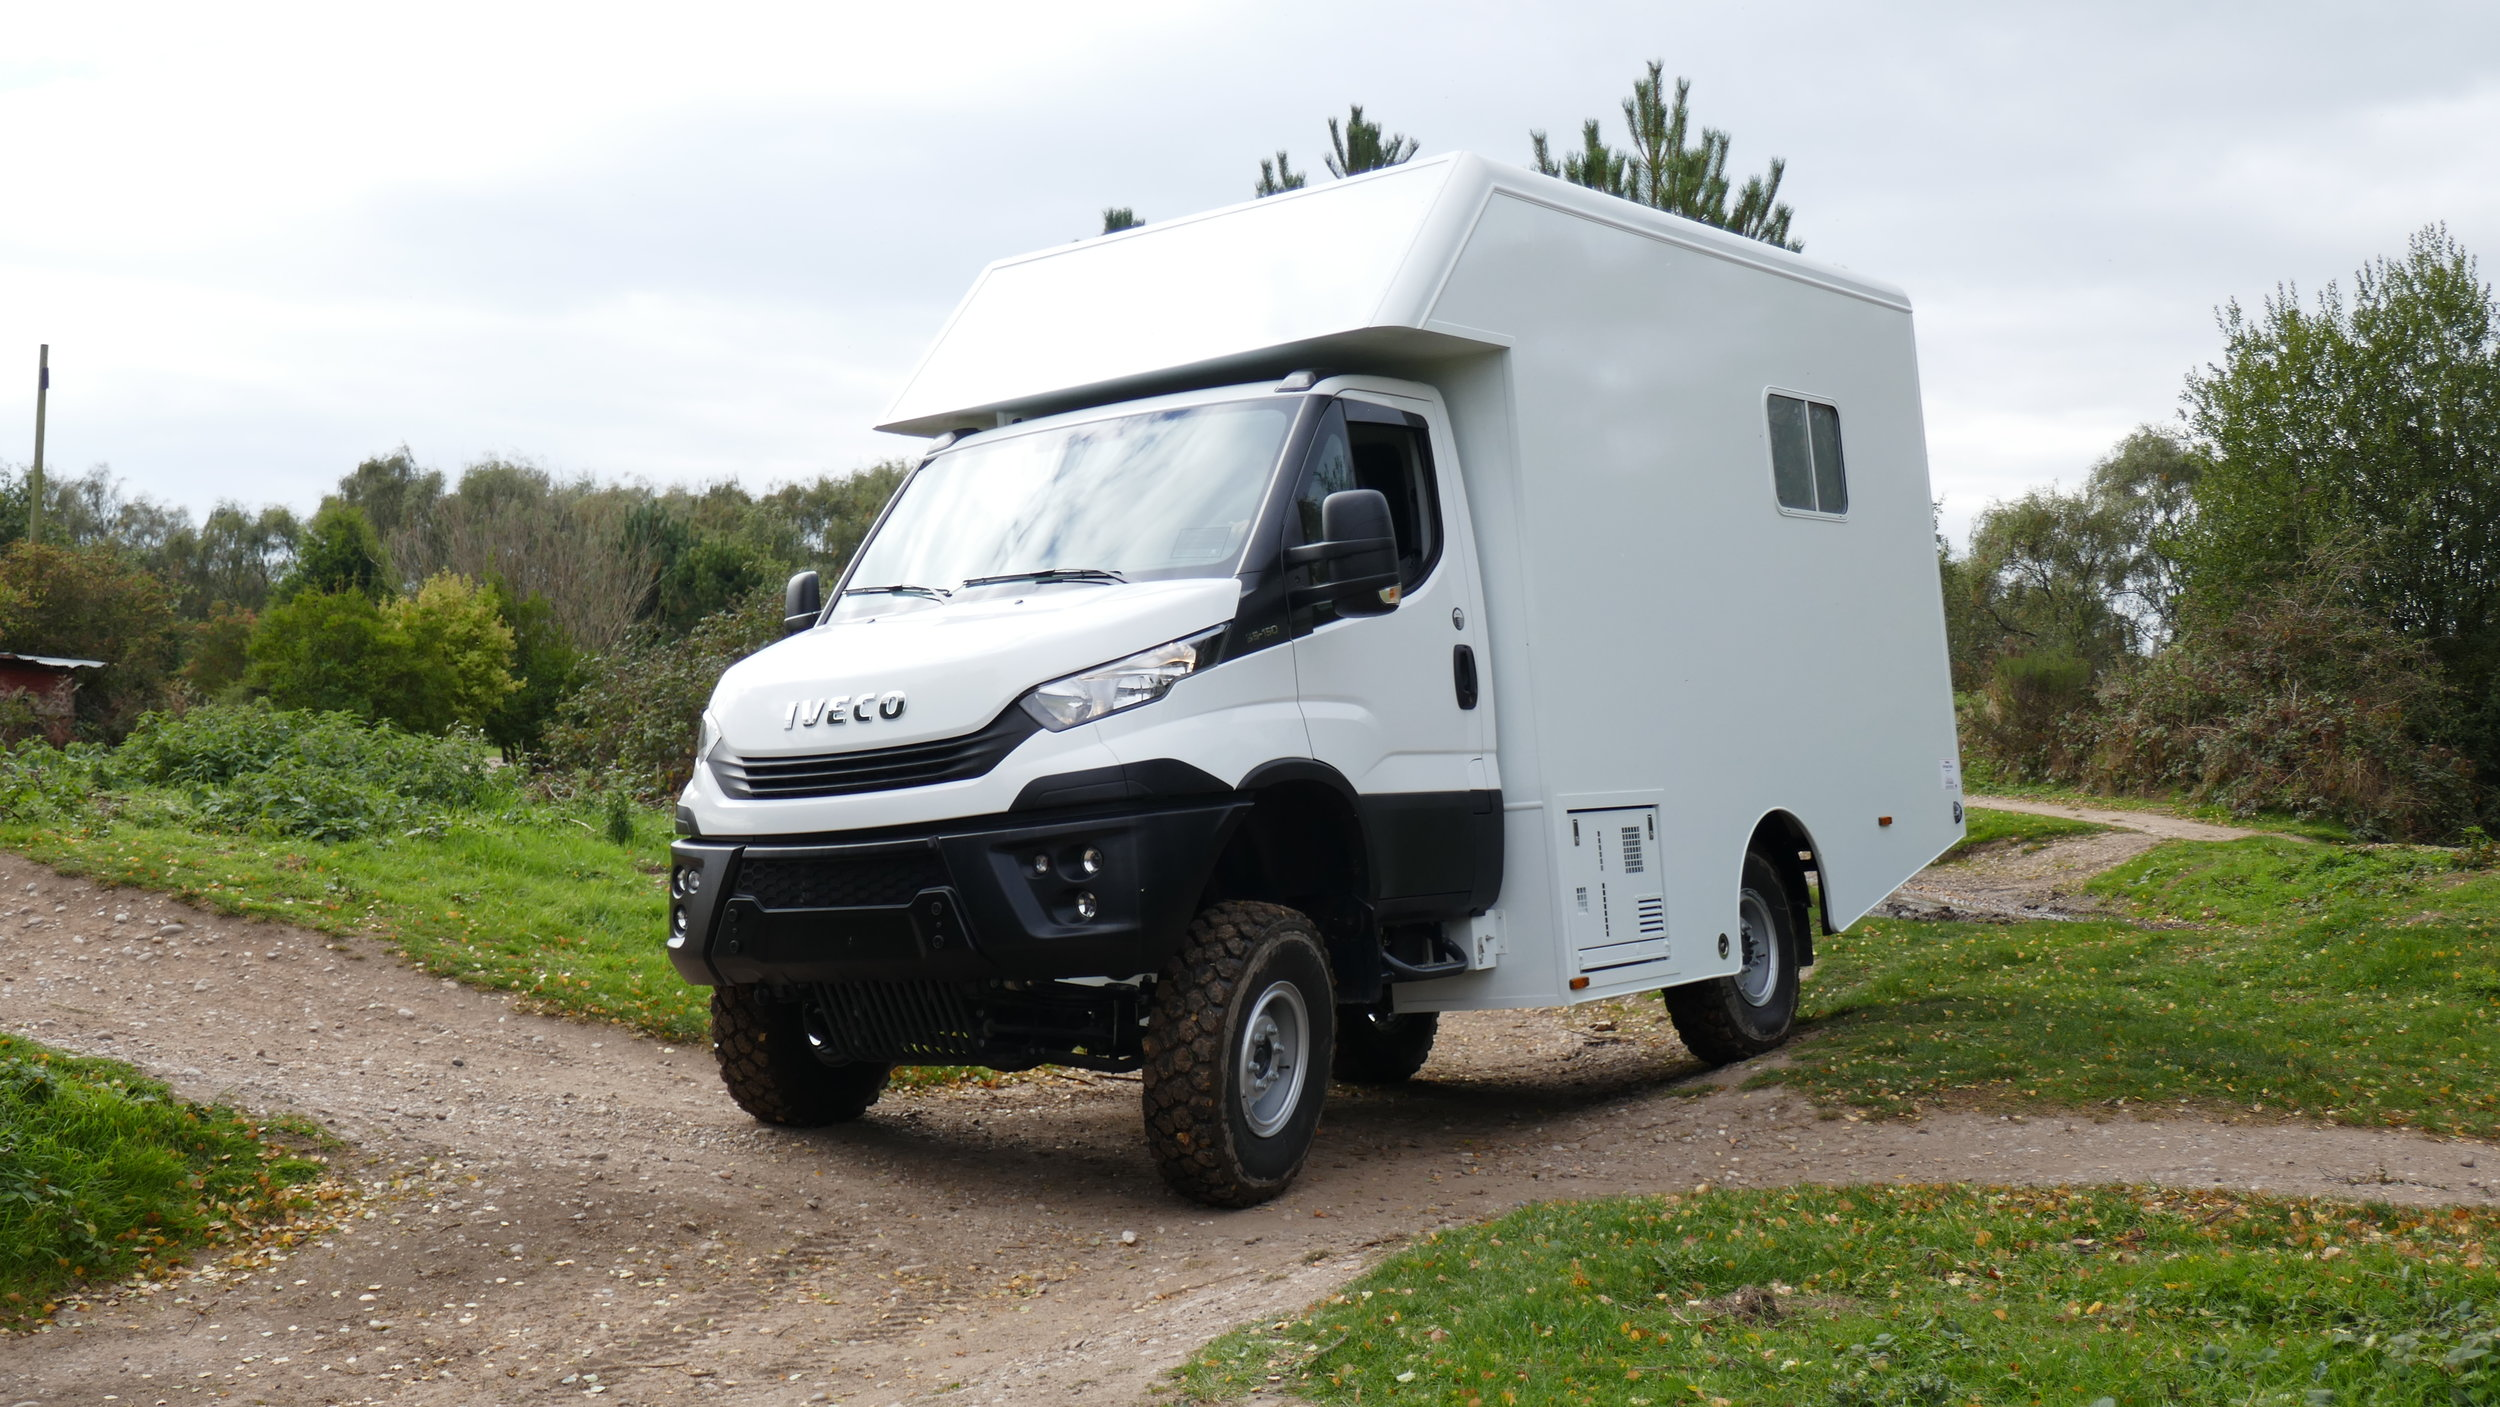 Iveco-daily-4x4-sherwood-truck-and-van 5.jpeg